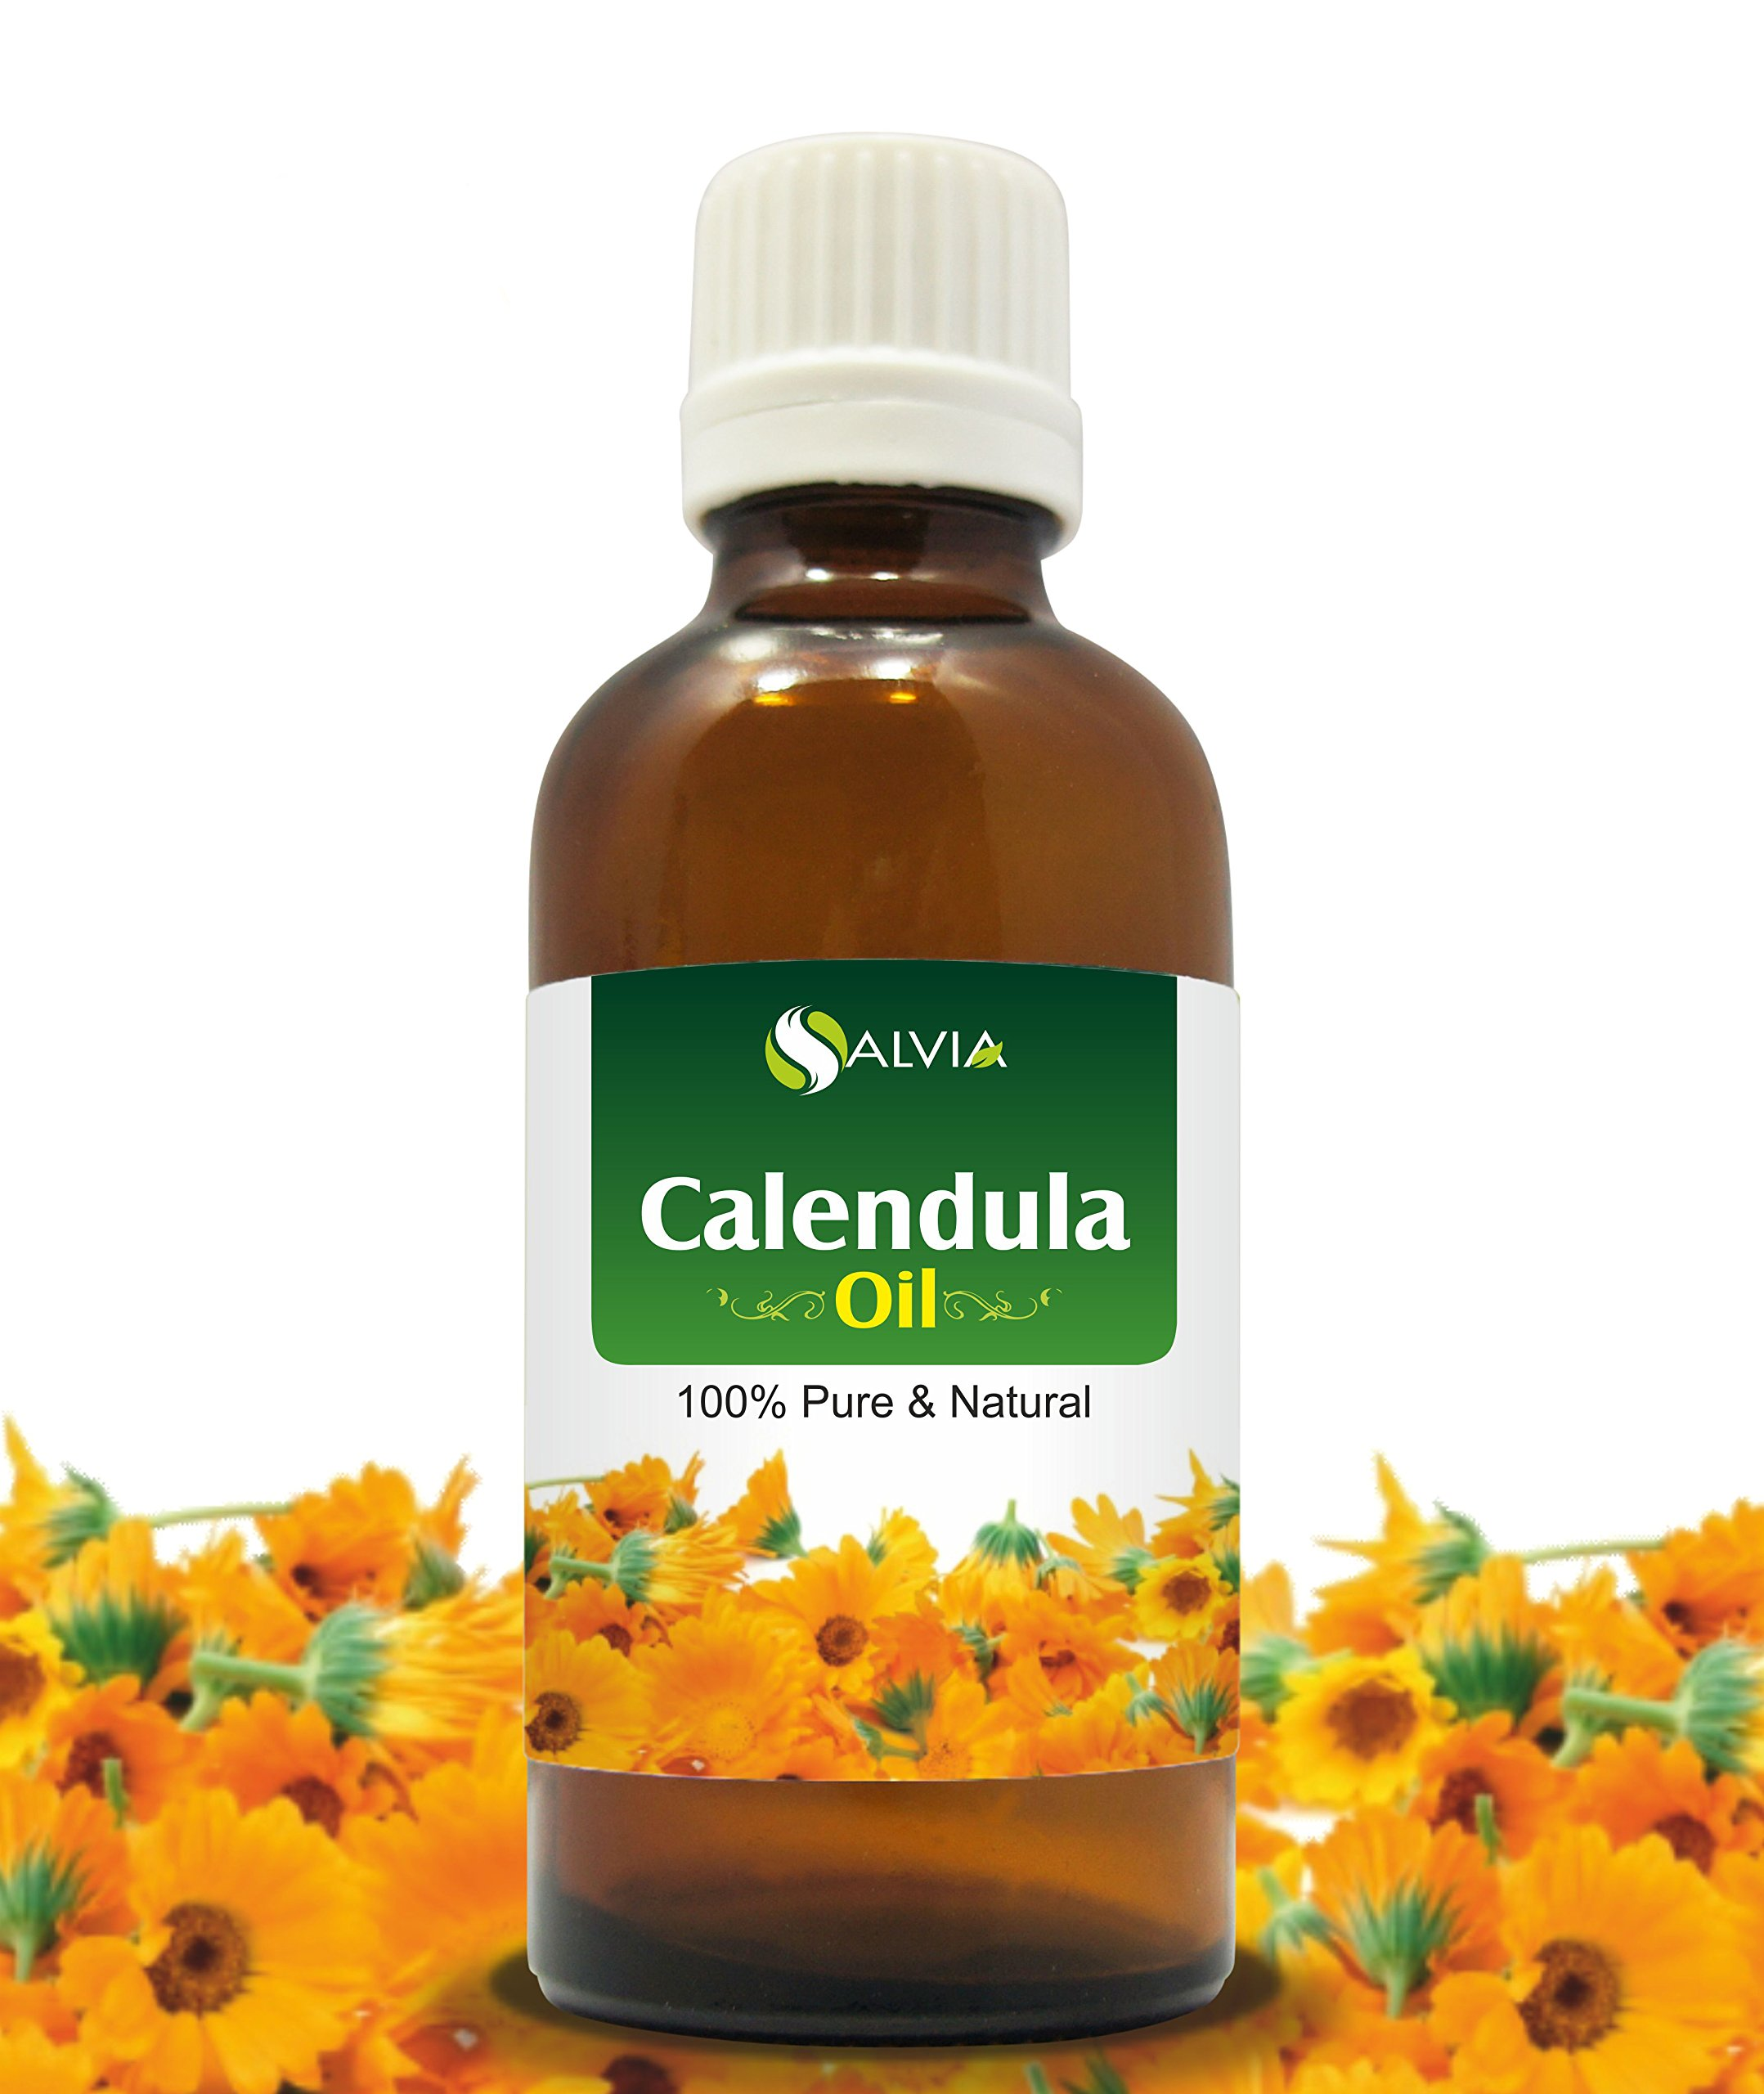 Calendula Essential Oil (Calendula officinalis) 100% Pure & Natural - Undiluted Infused Aromatherapy Oil - Therapeutic Grade - 30 ML by Salvia